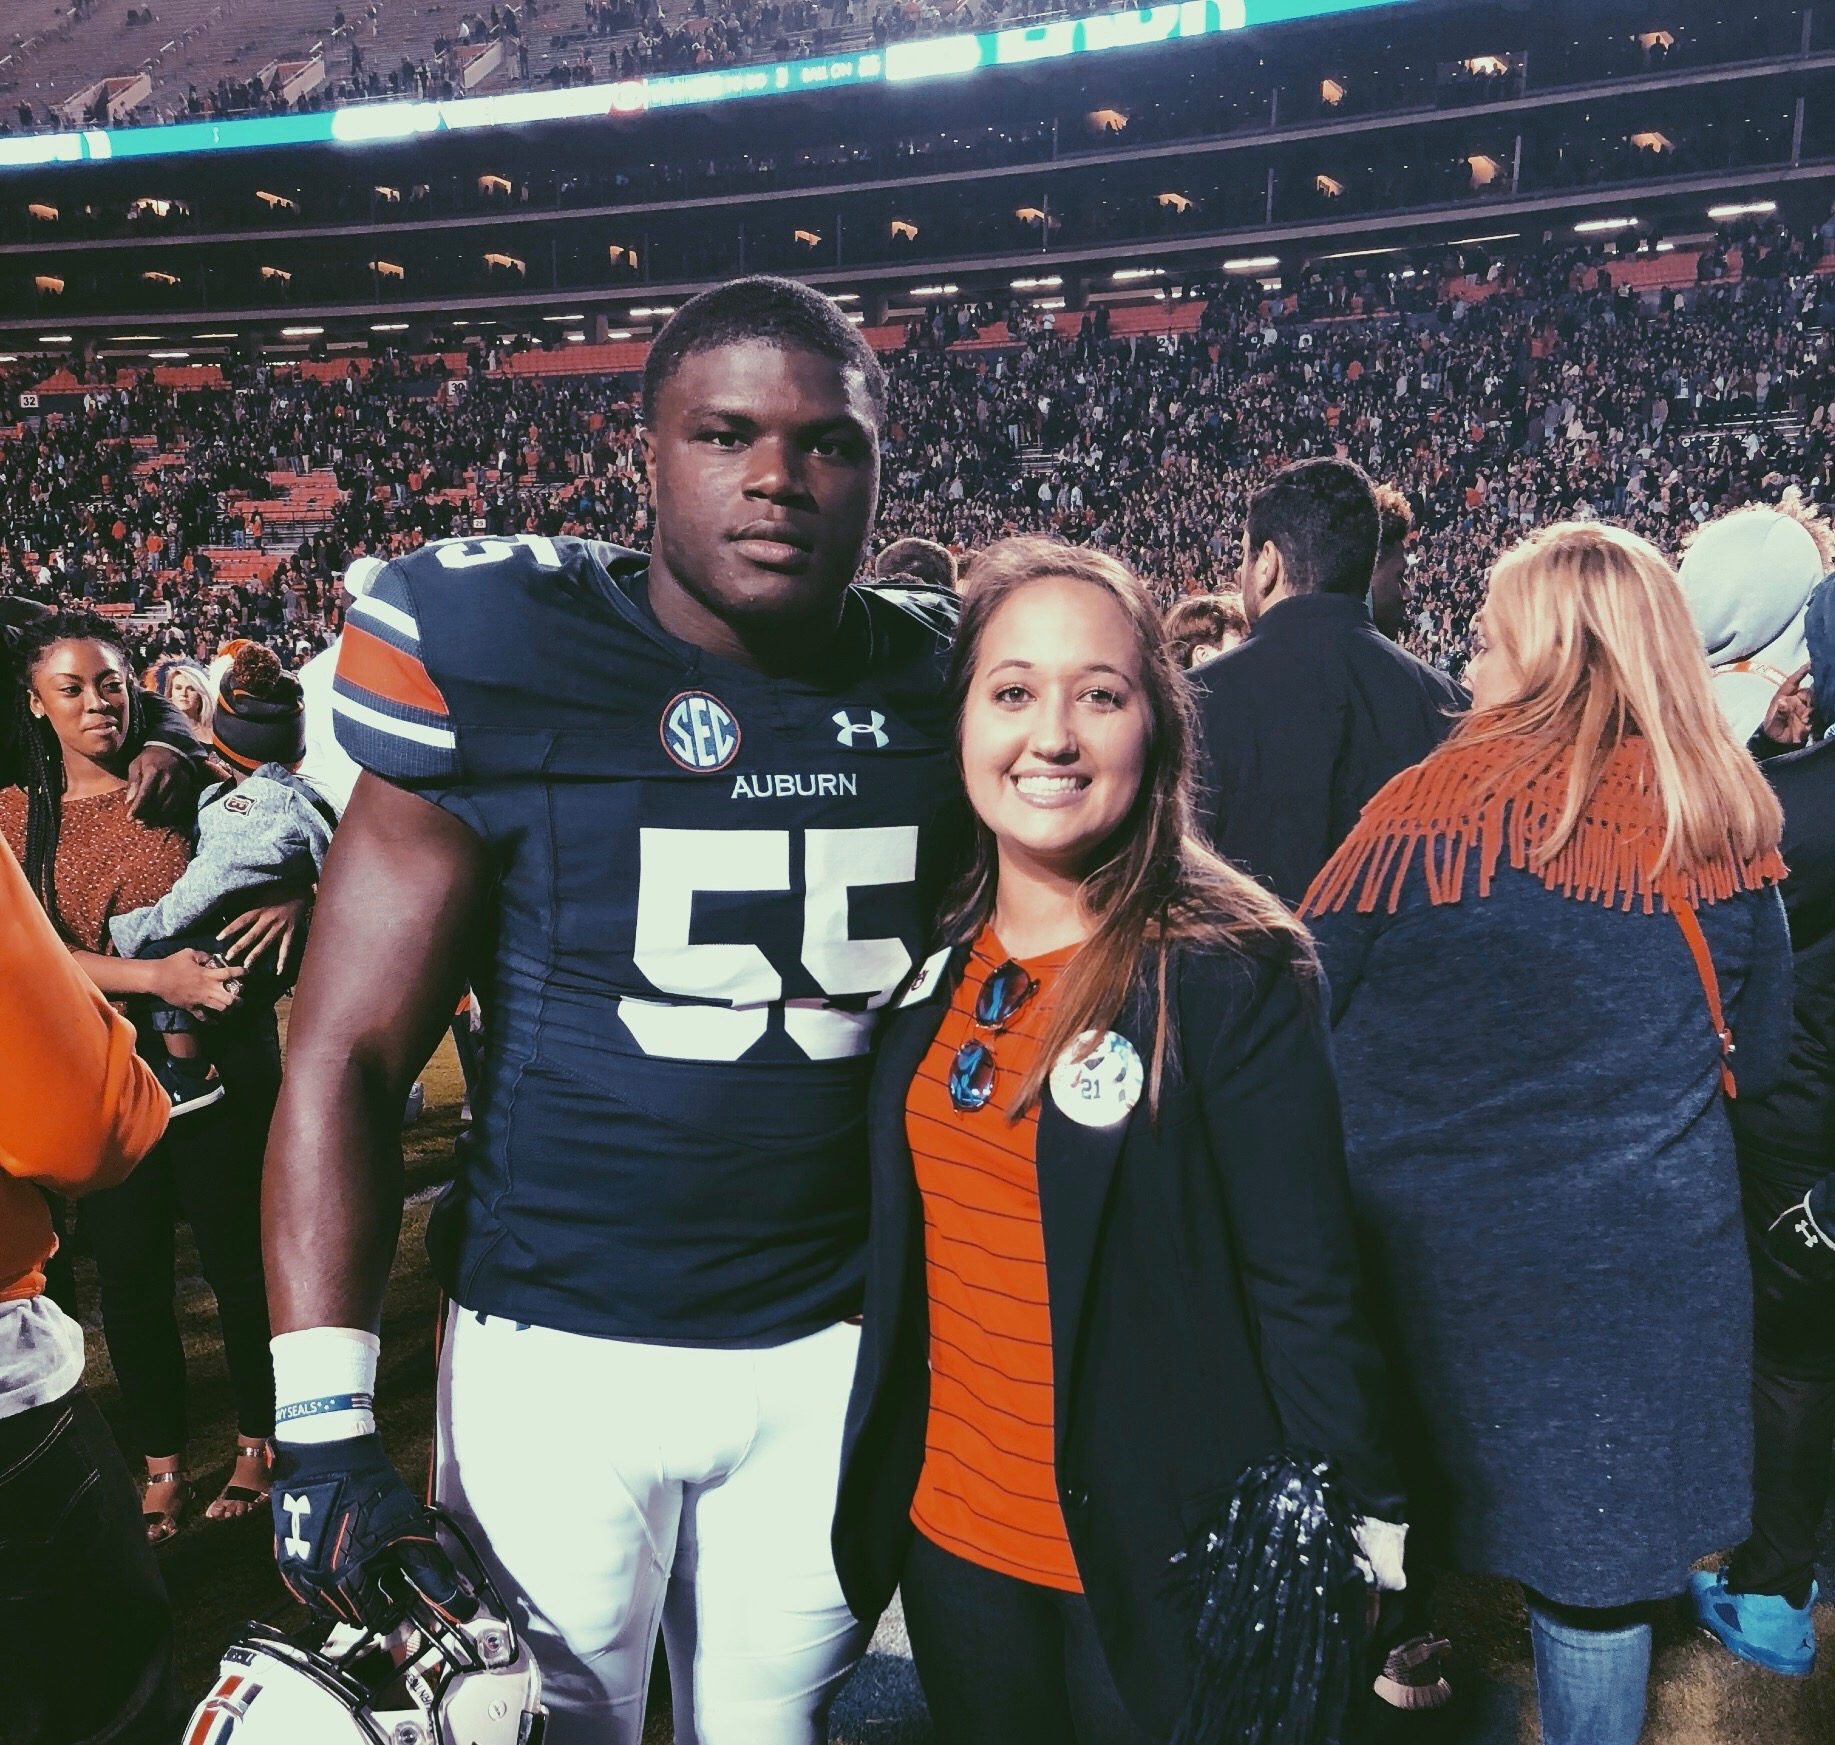 Auburn Football Player